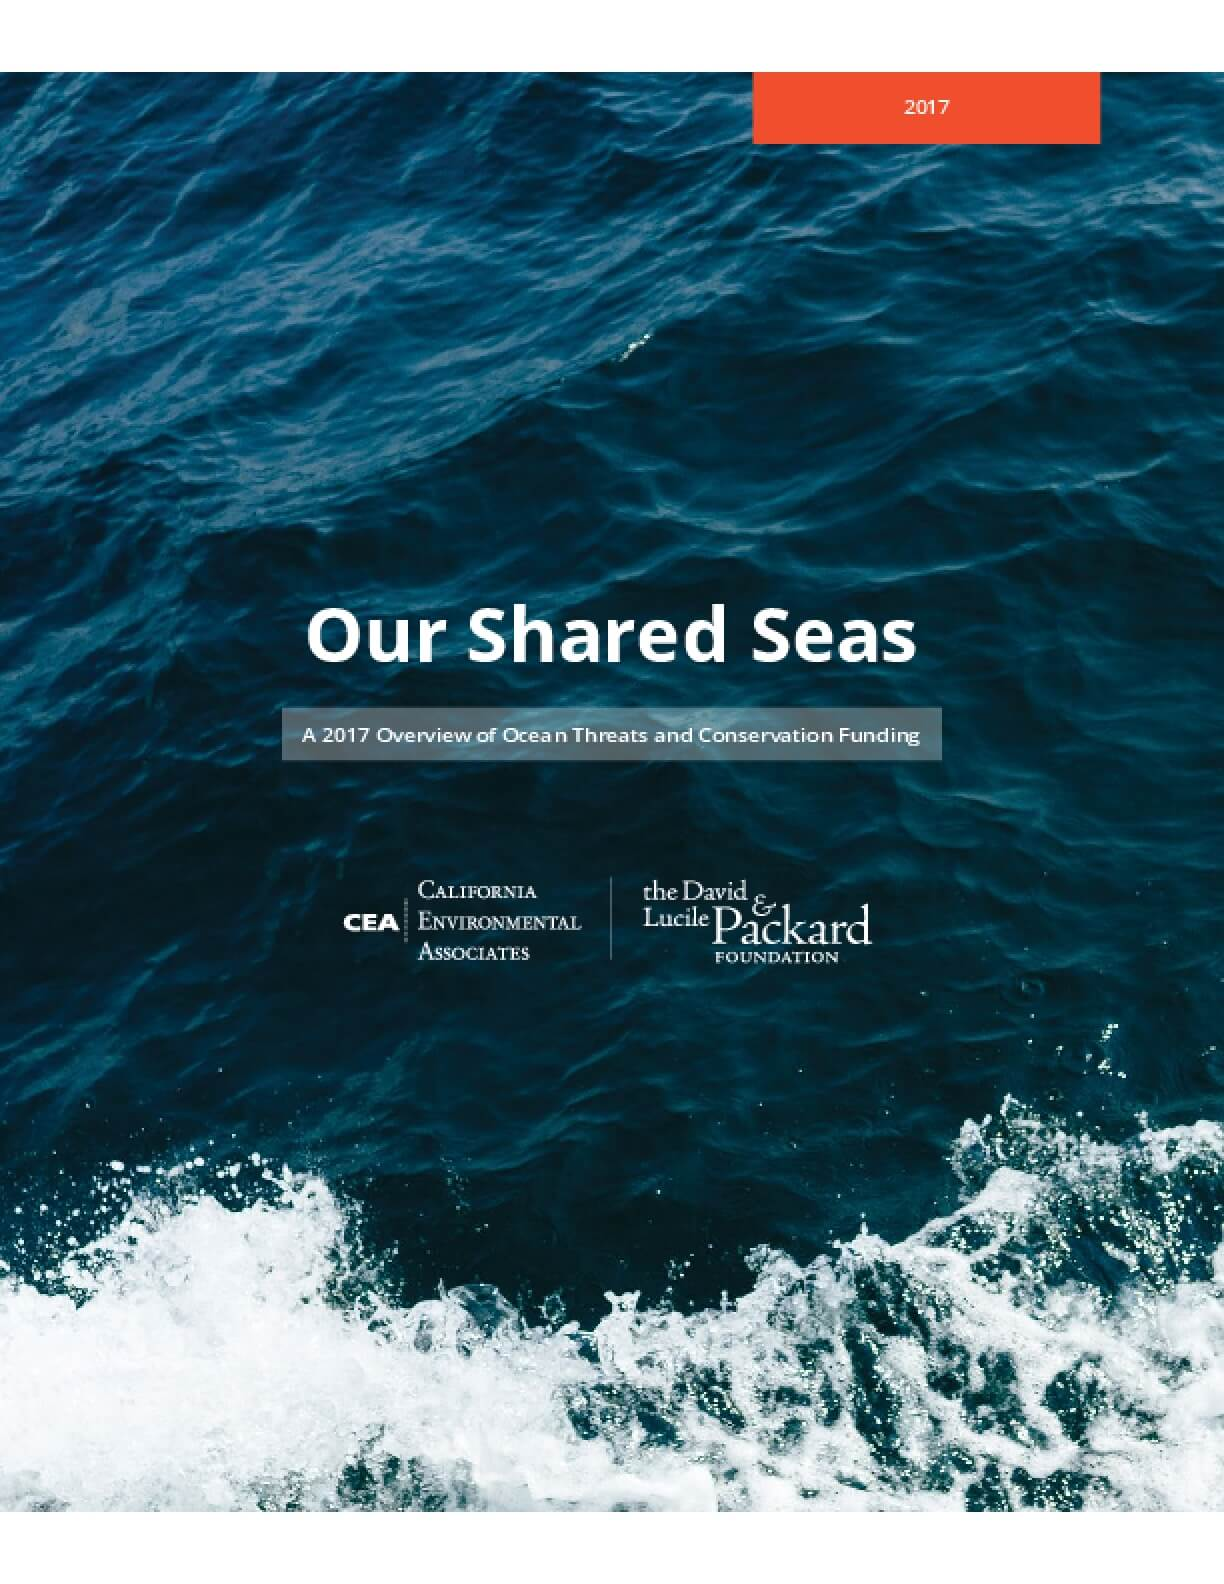 Our Shared Seas: A 2017 Overview of Ocean Threats and Conservation Funding